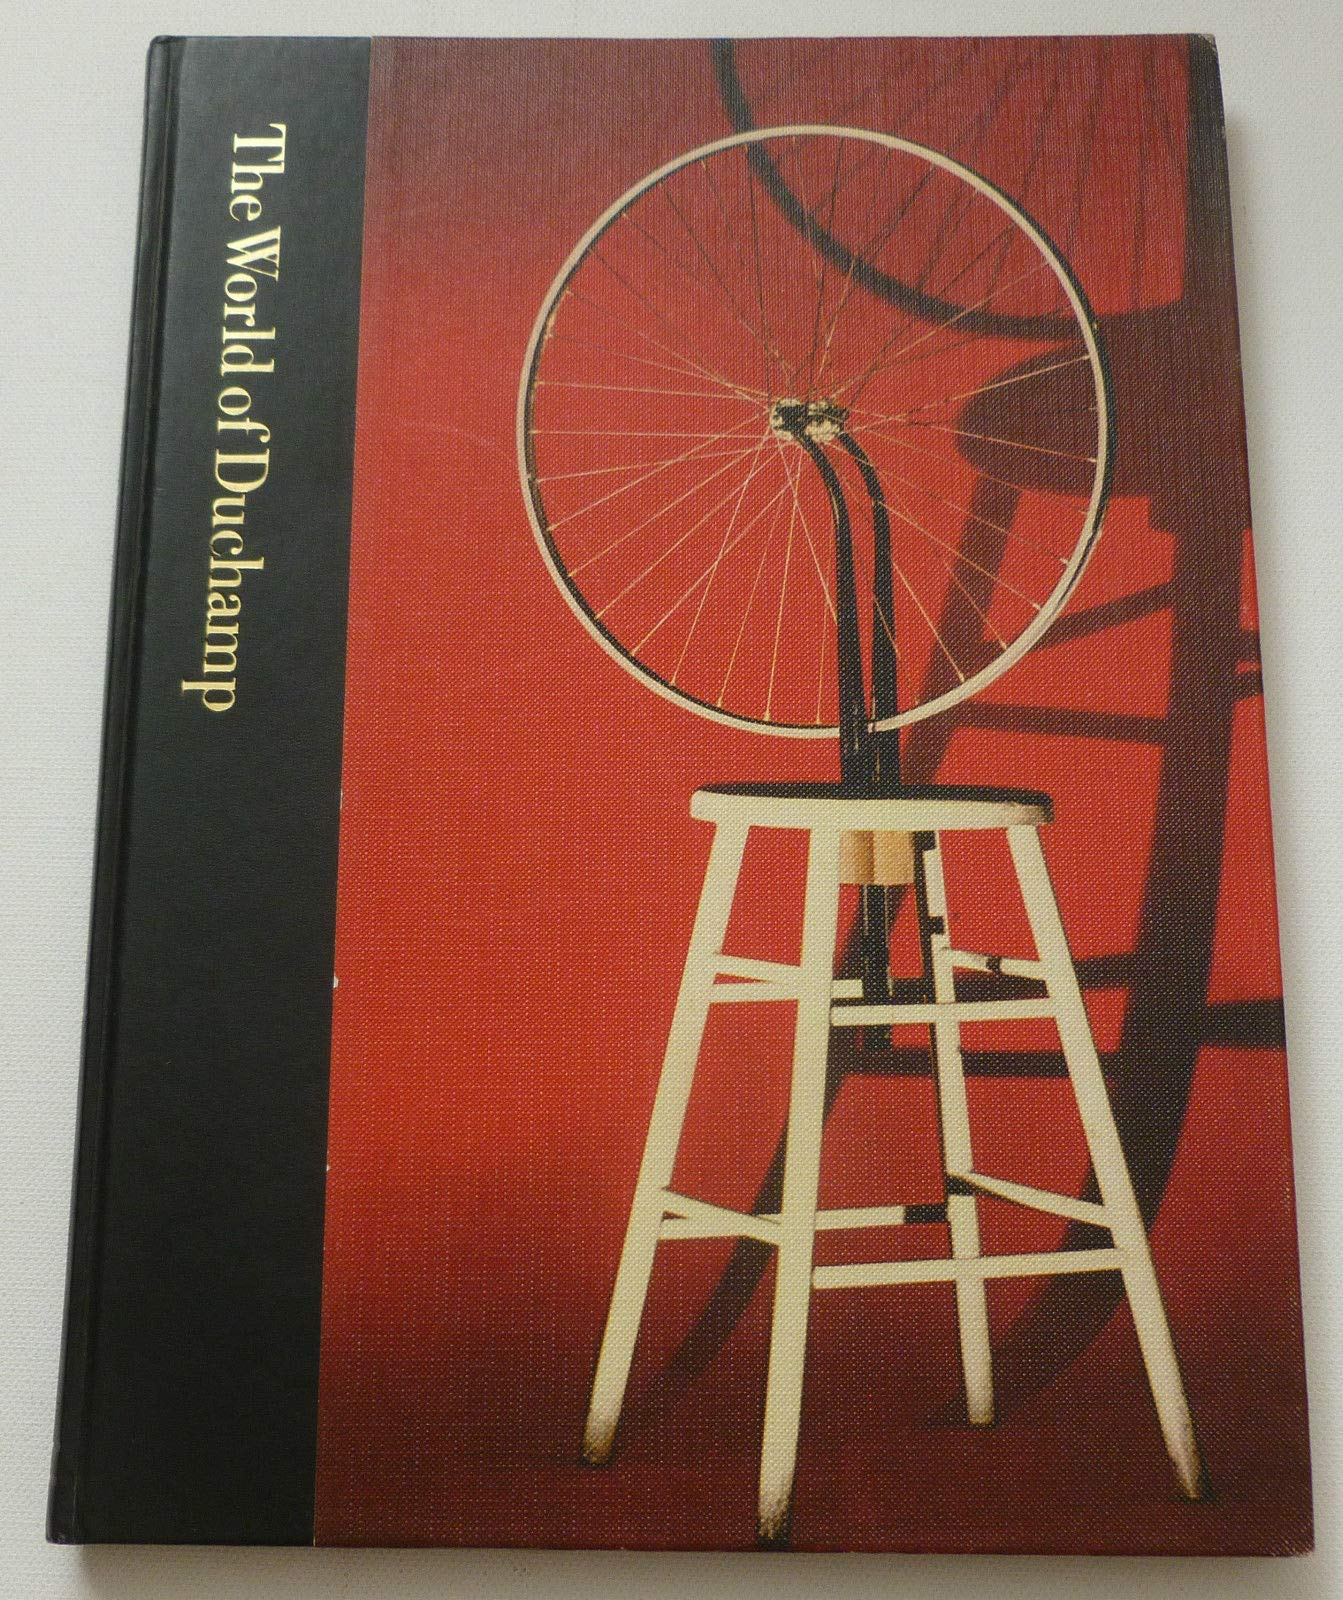 The World of Marcel Duchamp 1887 - 1968: Amazon.es: Calvin and the Editors of Time-Life Books. Tomkins: Libros